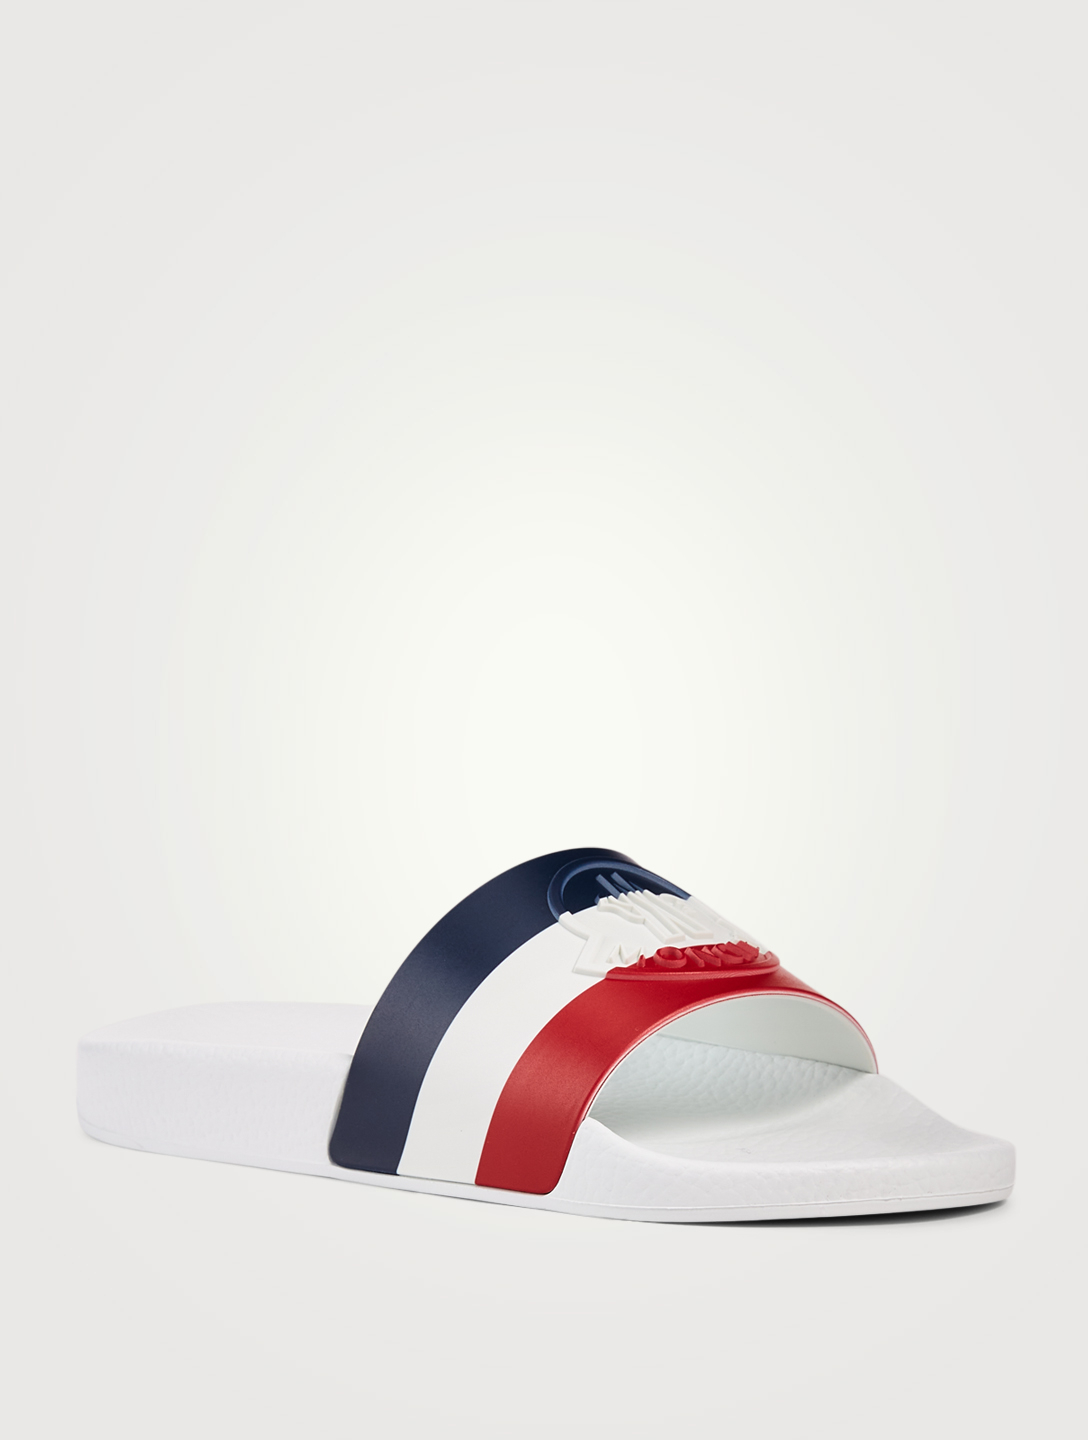 MONCLER Jeanne Rubber Slide Sandals In Tricolour Stripe Print Women's Multi